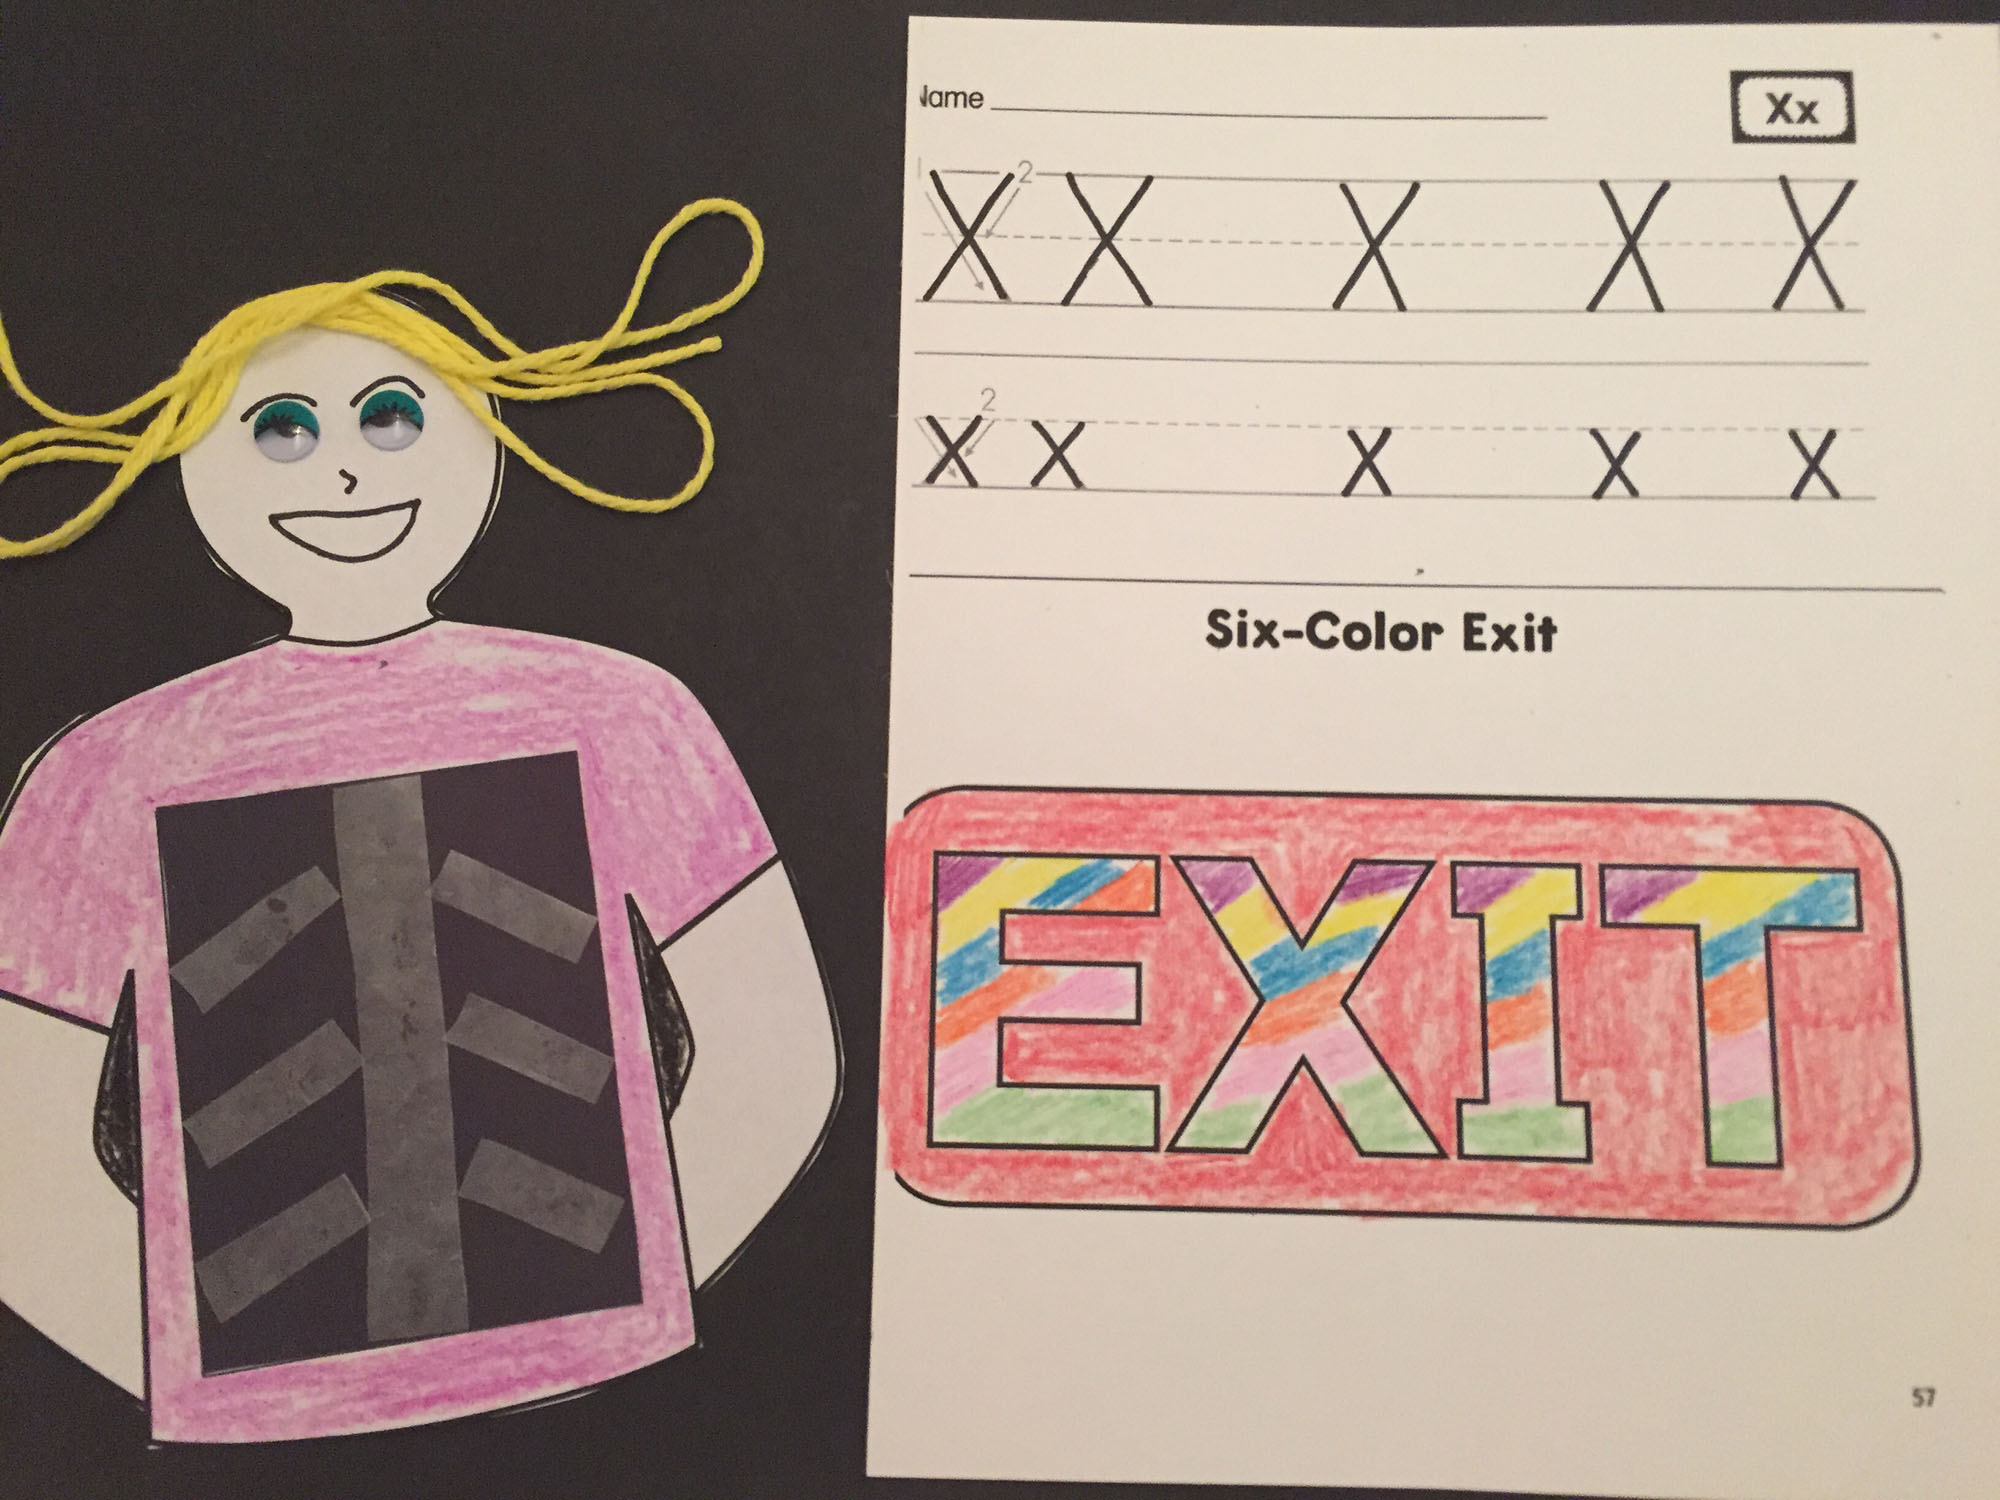 Wax-Paper X-ray and Six-Color Exit